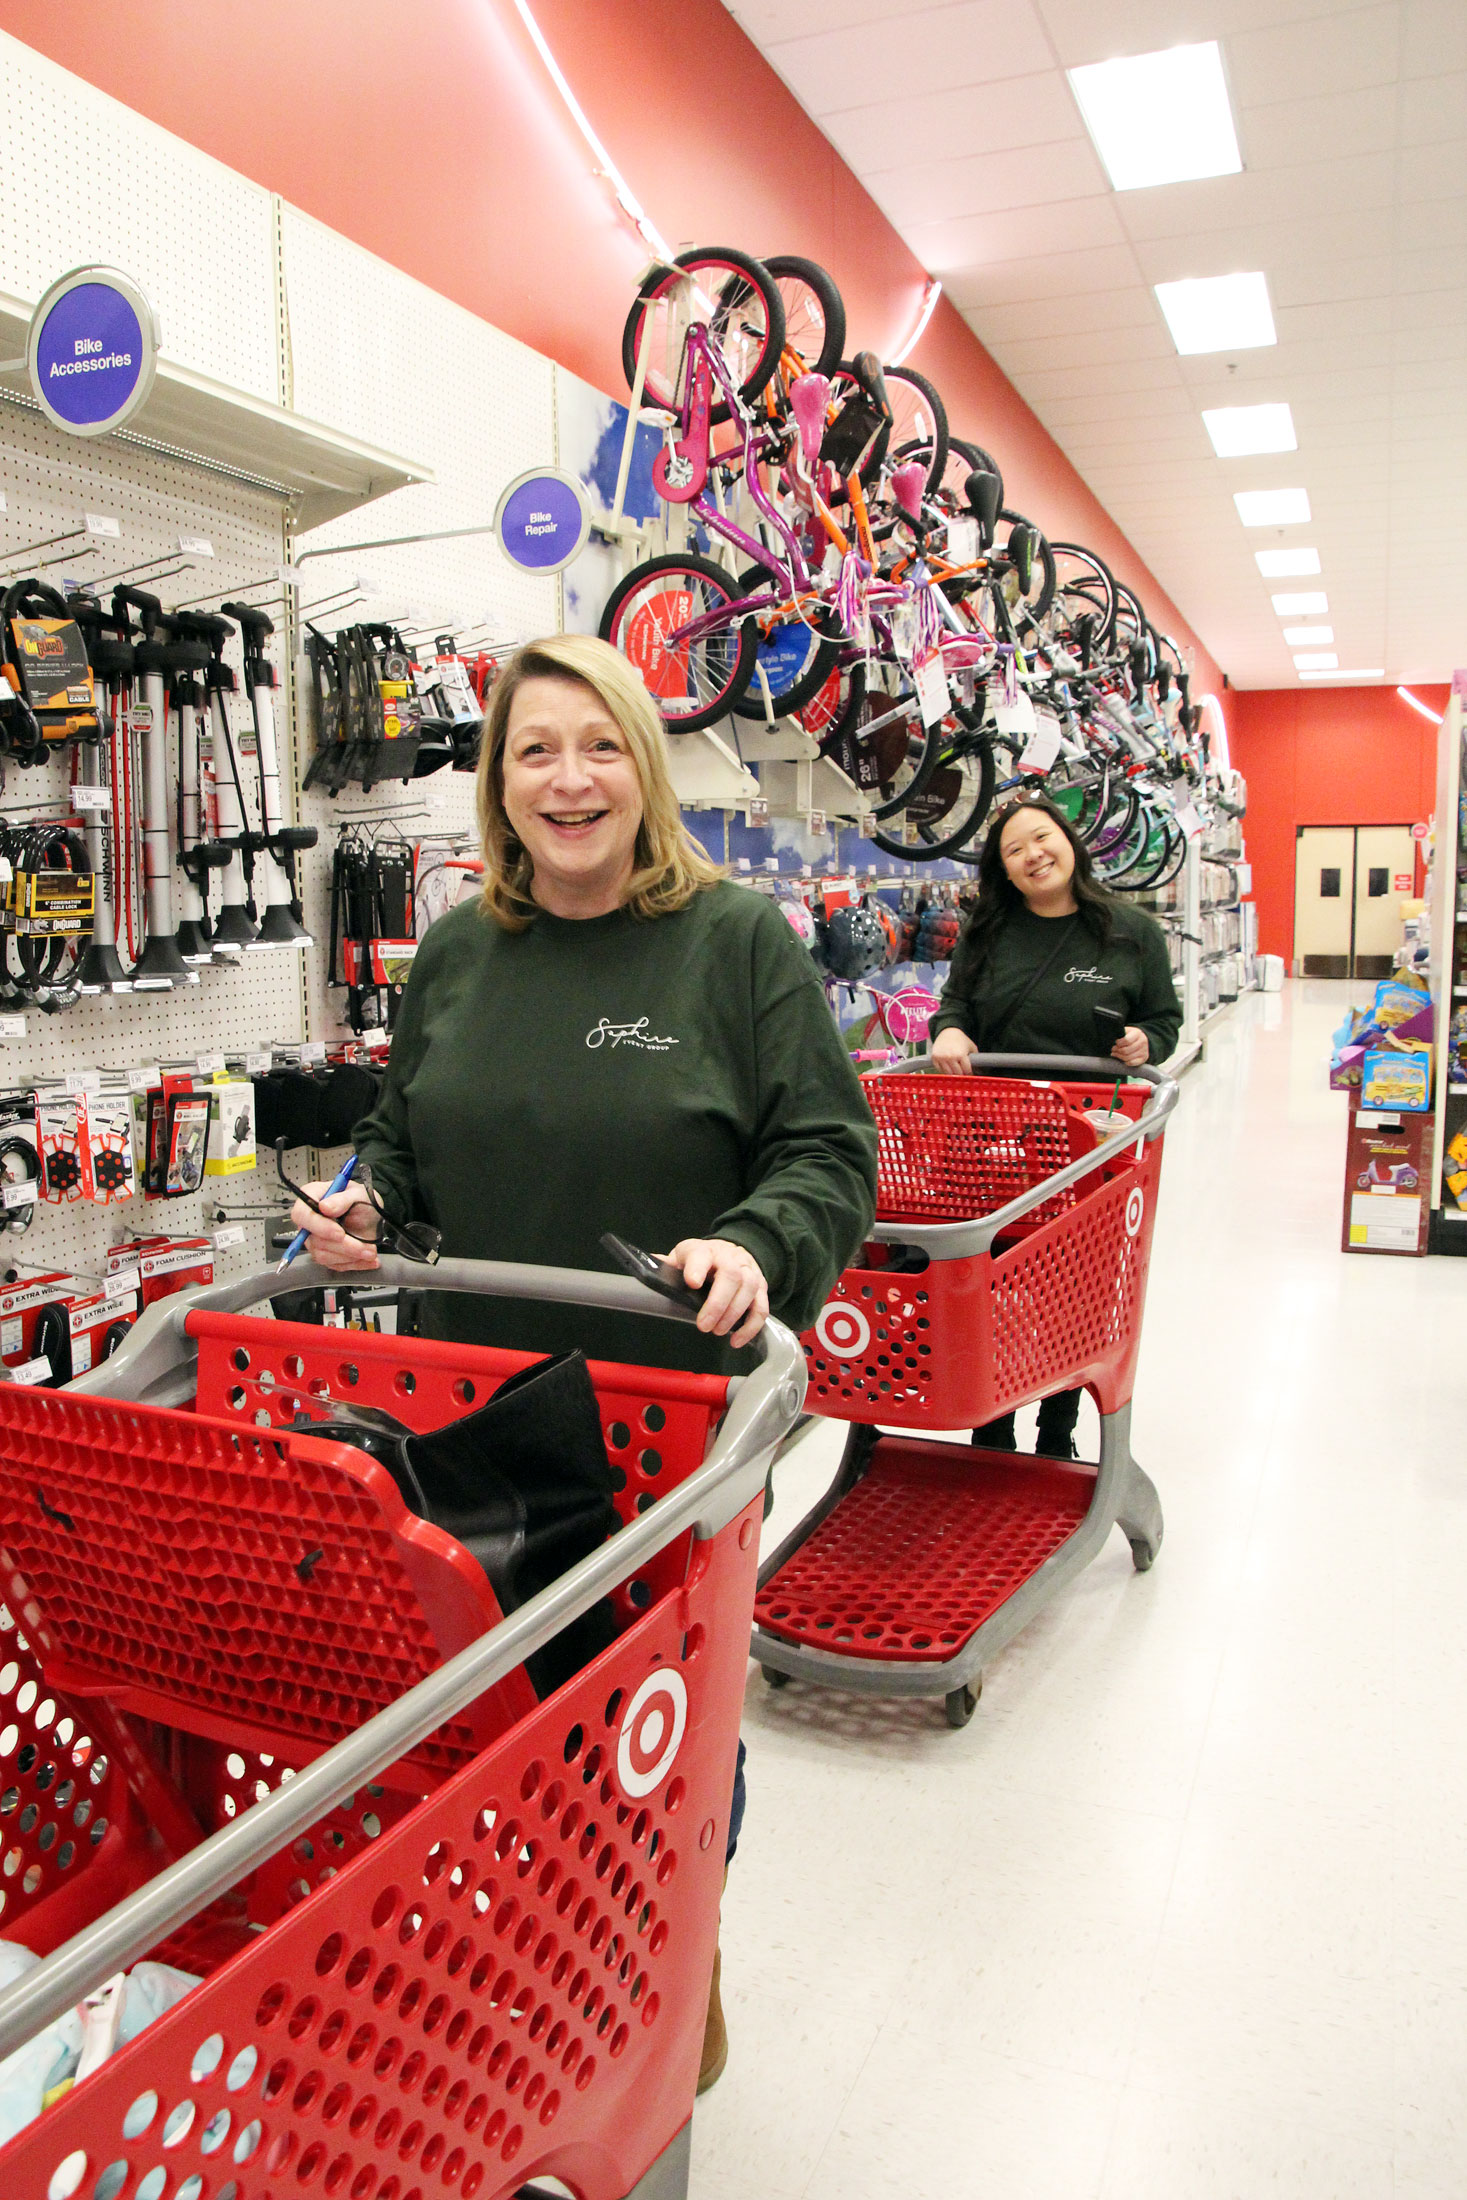 SEG staff pushes carts around Target shopping for holiday gifts